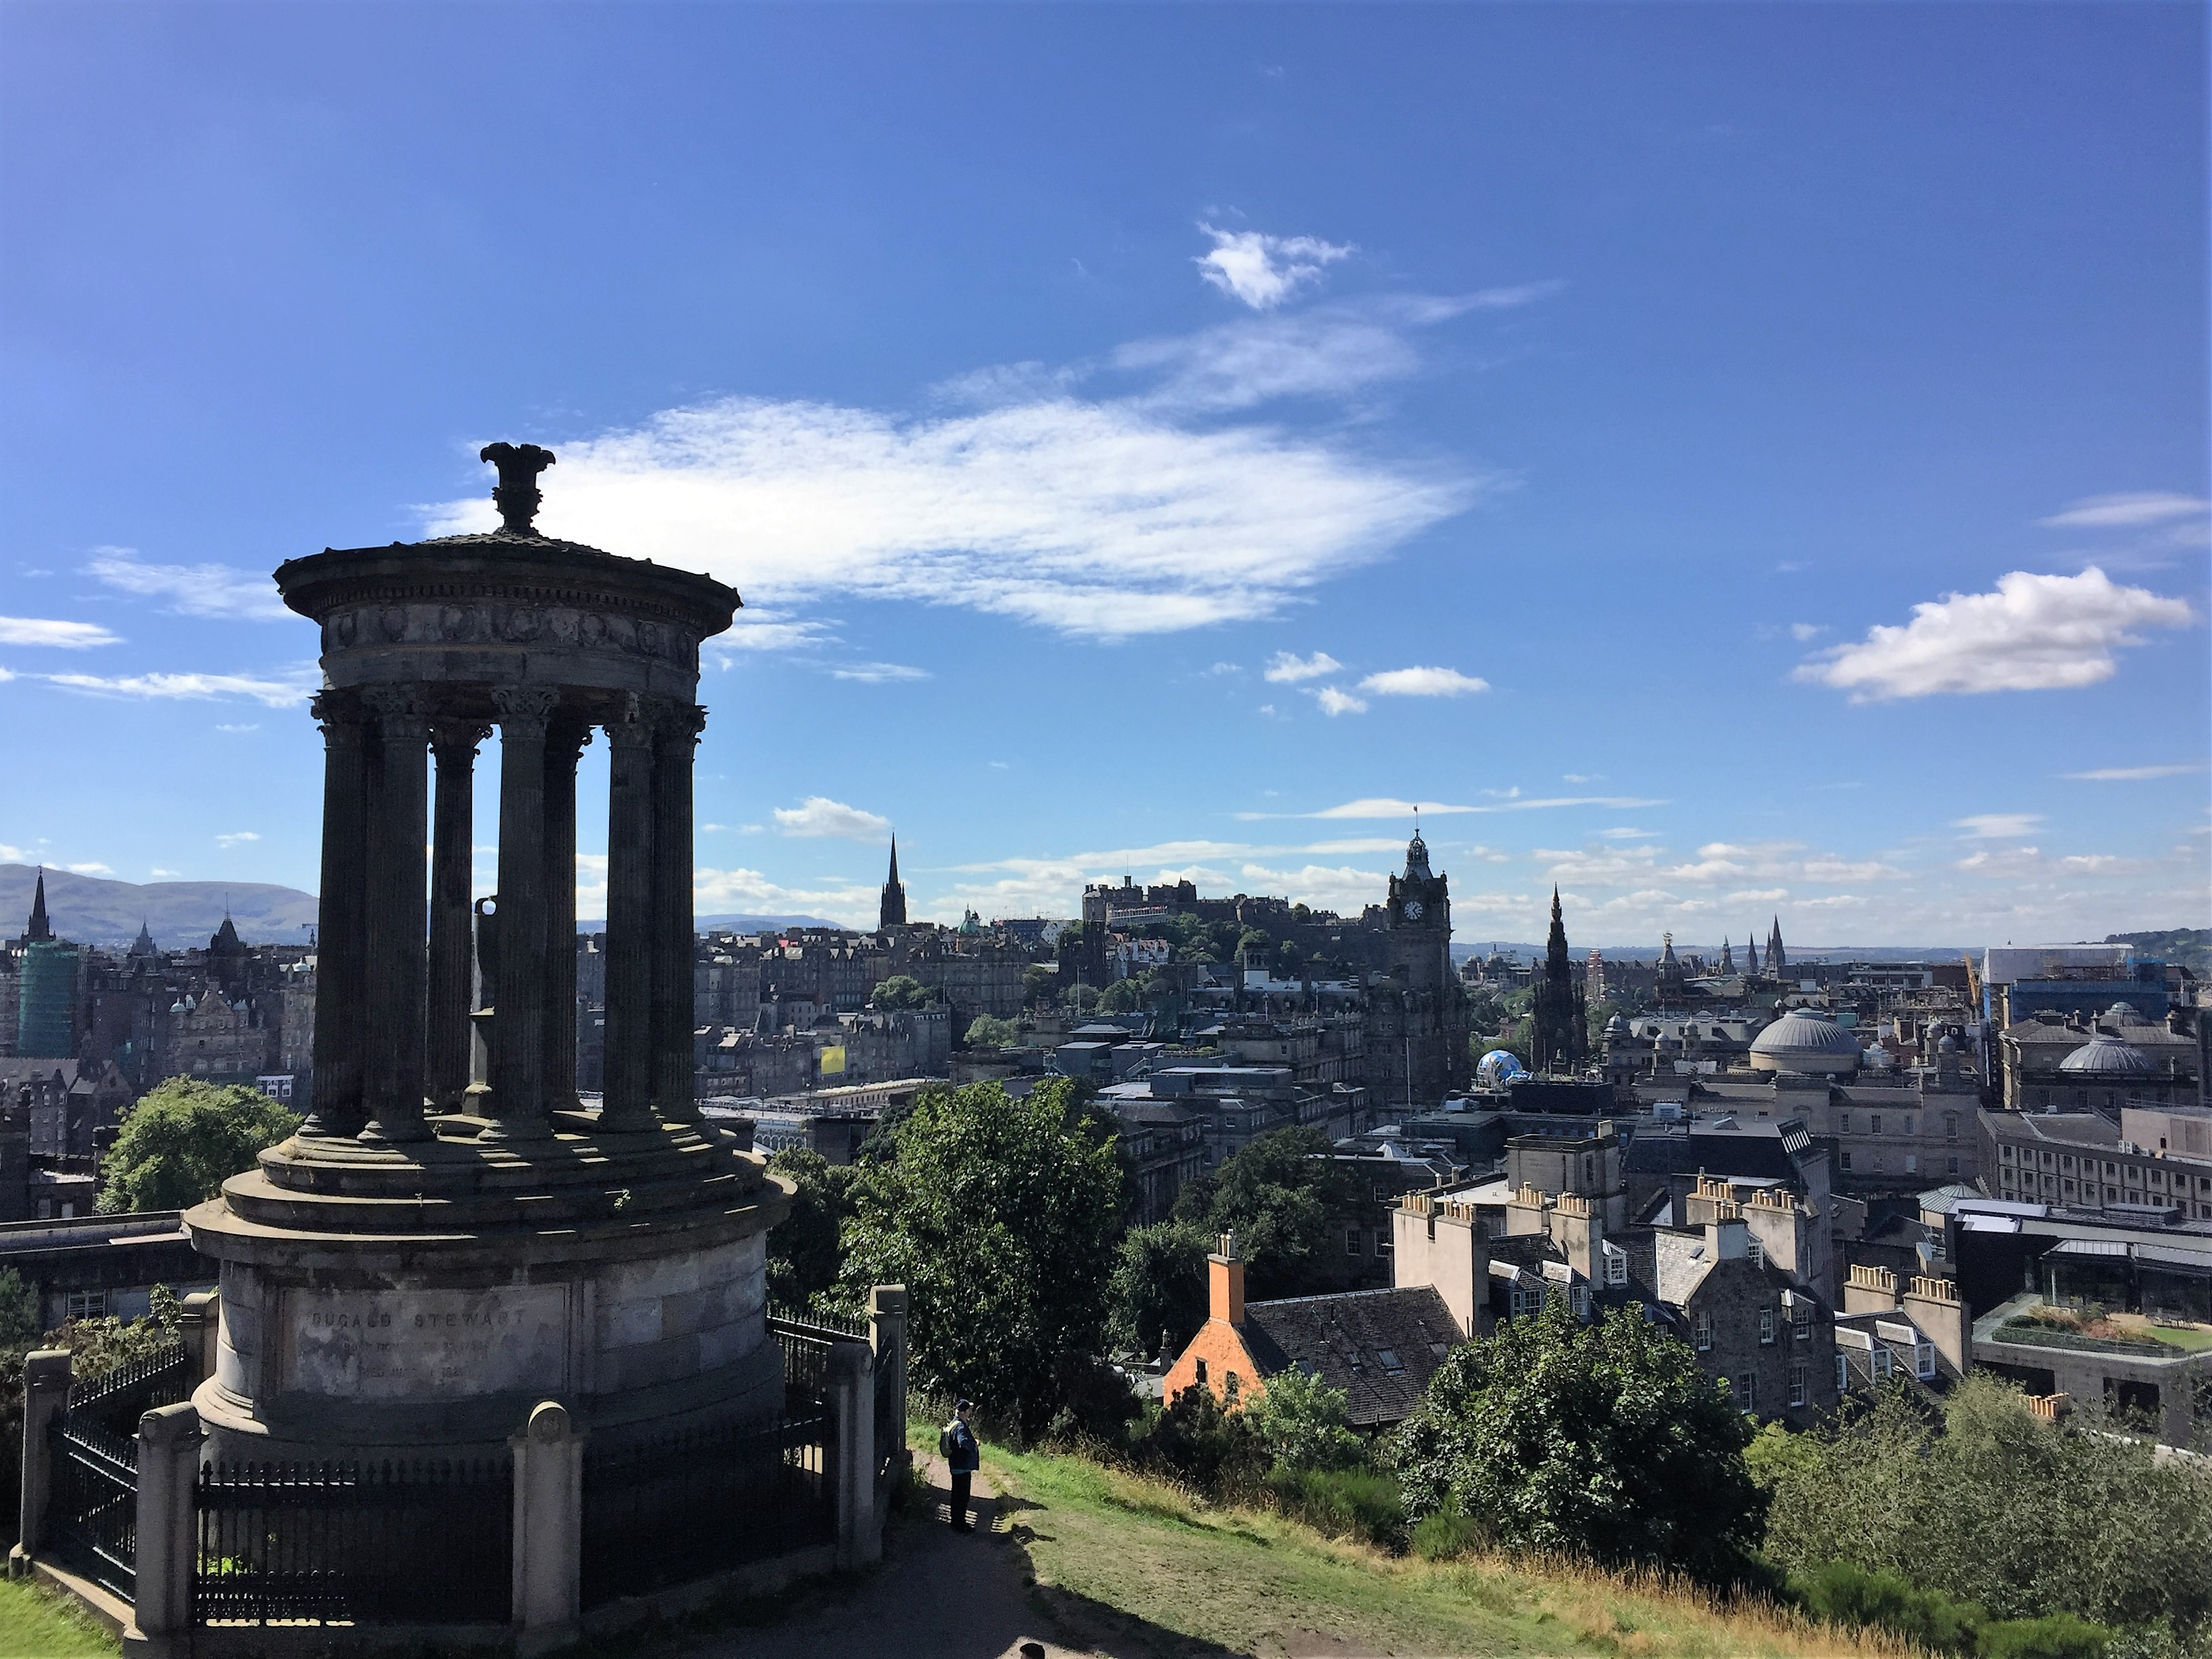 The view from Calton Hill.